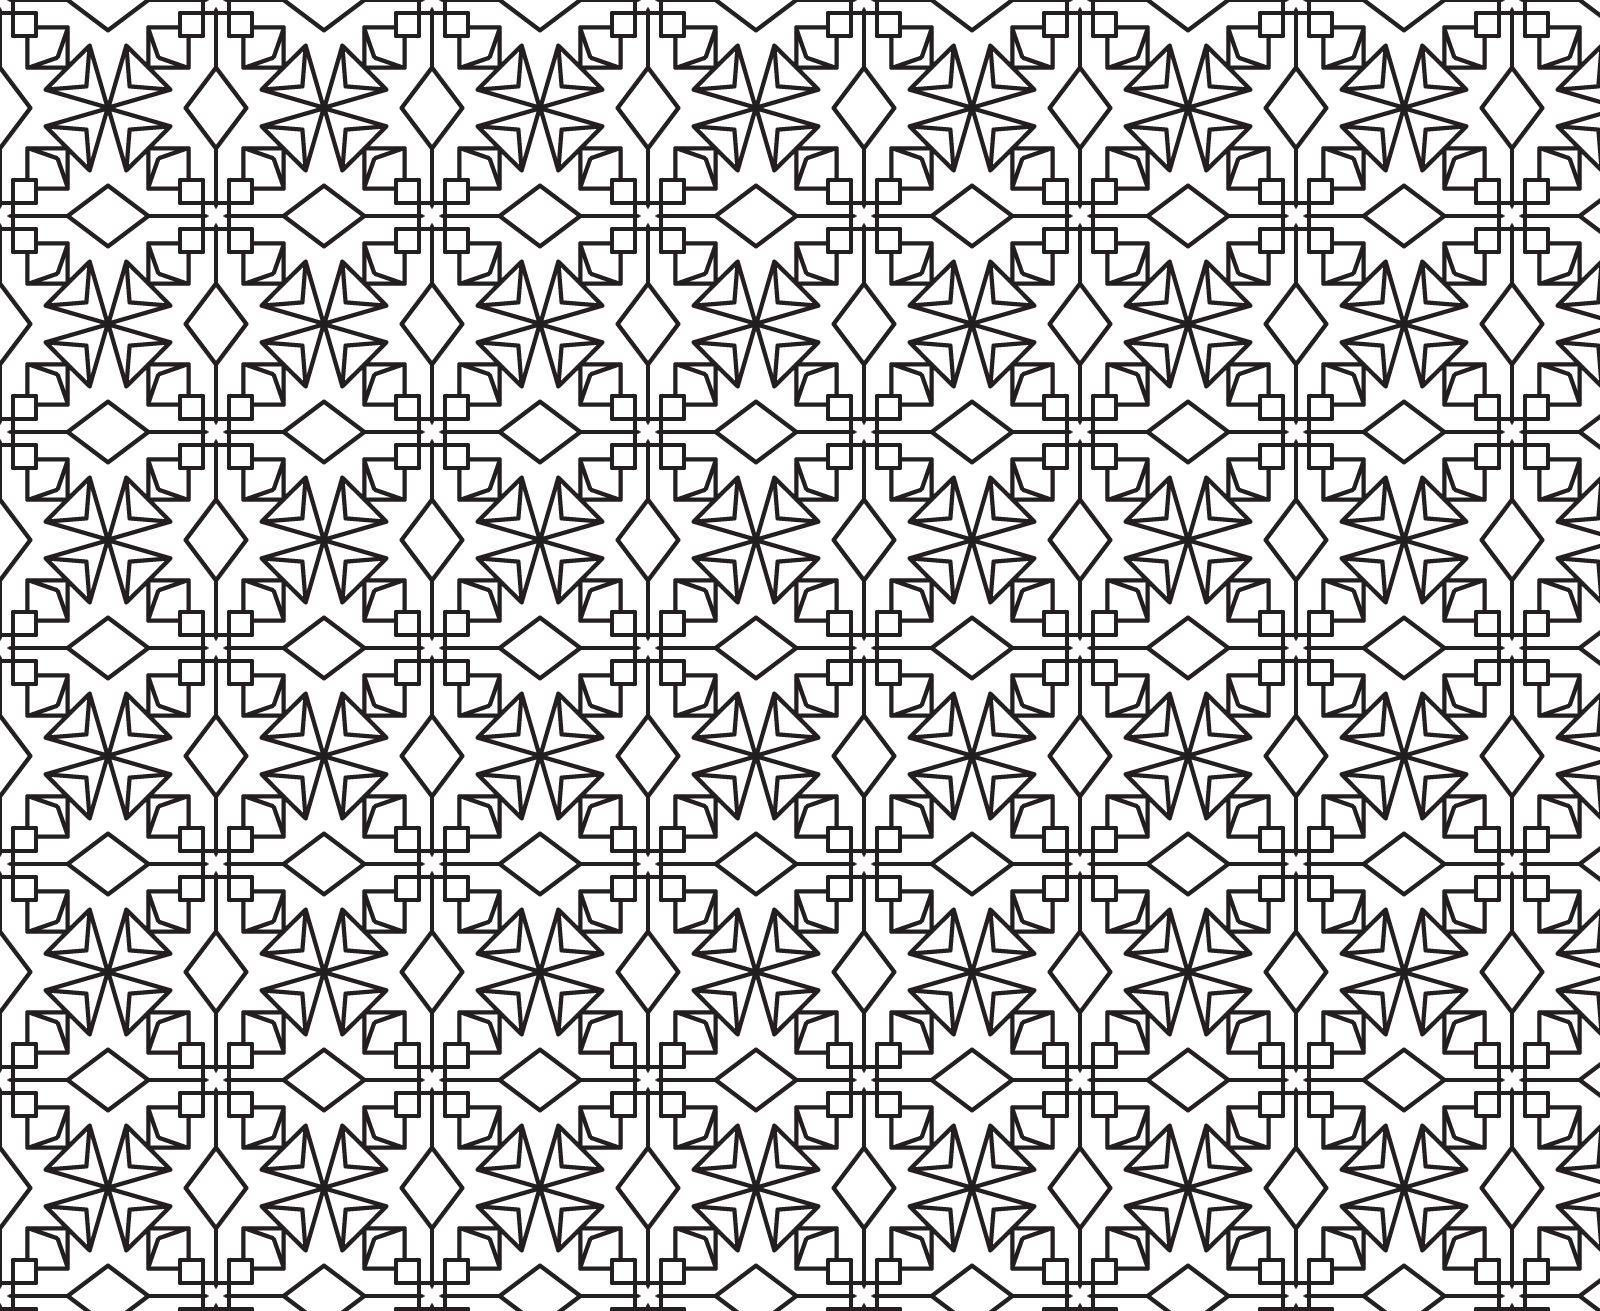 Crochet and geometric shapes patterns free vector background 28 crochet and geometric shapes patterns free vector background 28 bankloansurffo Choice Image